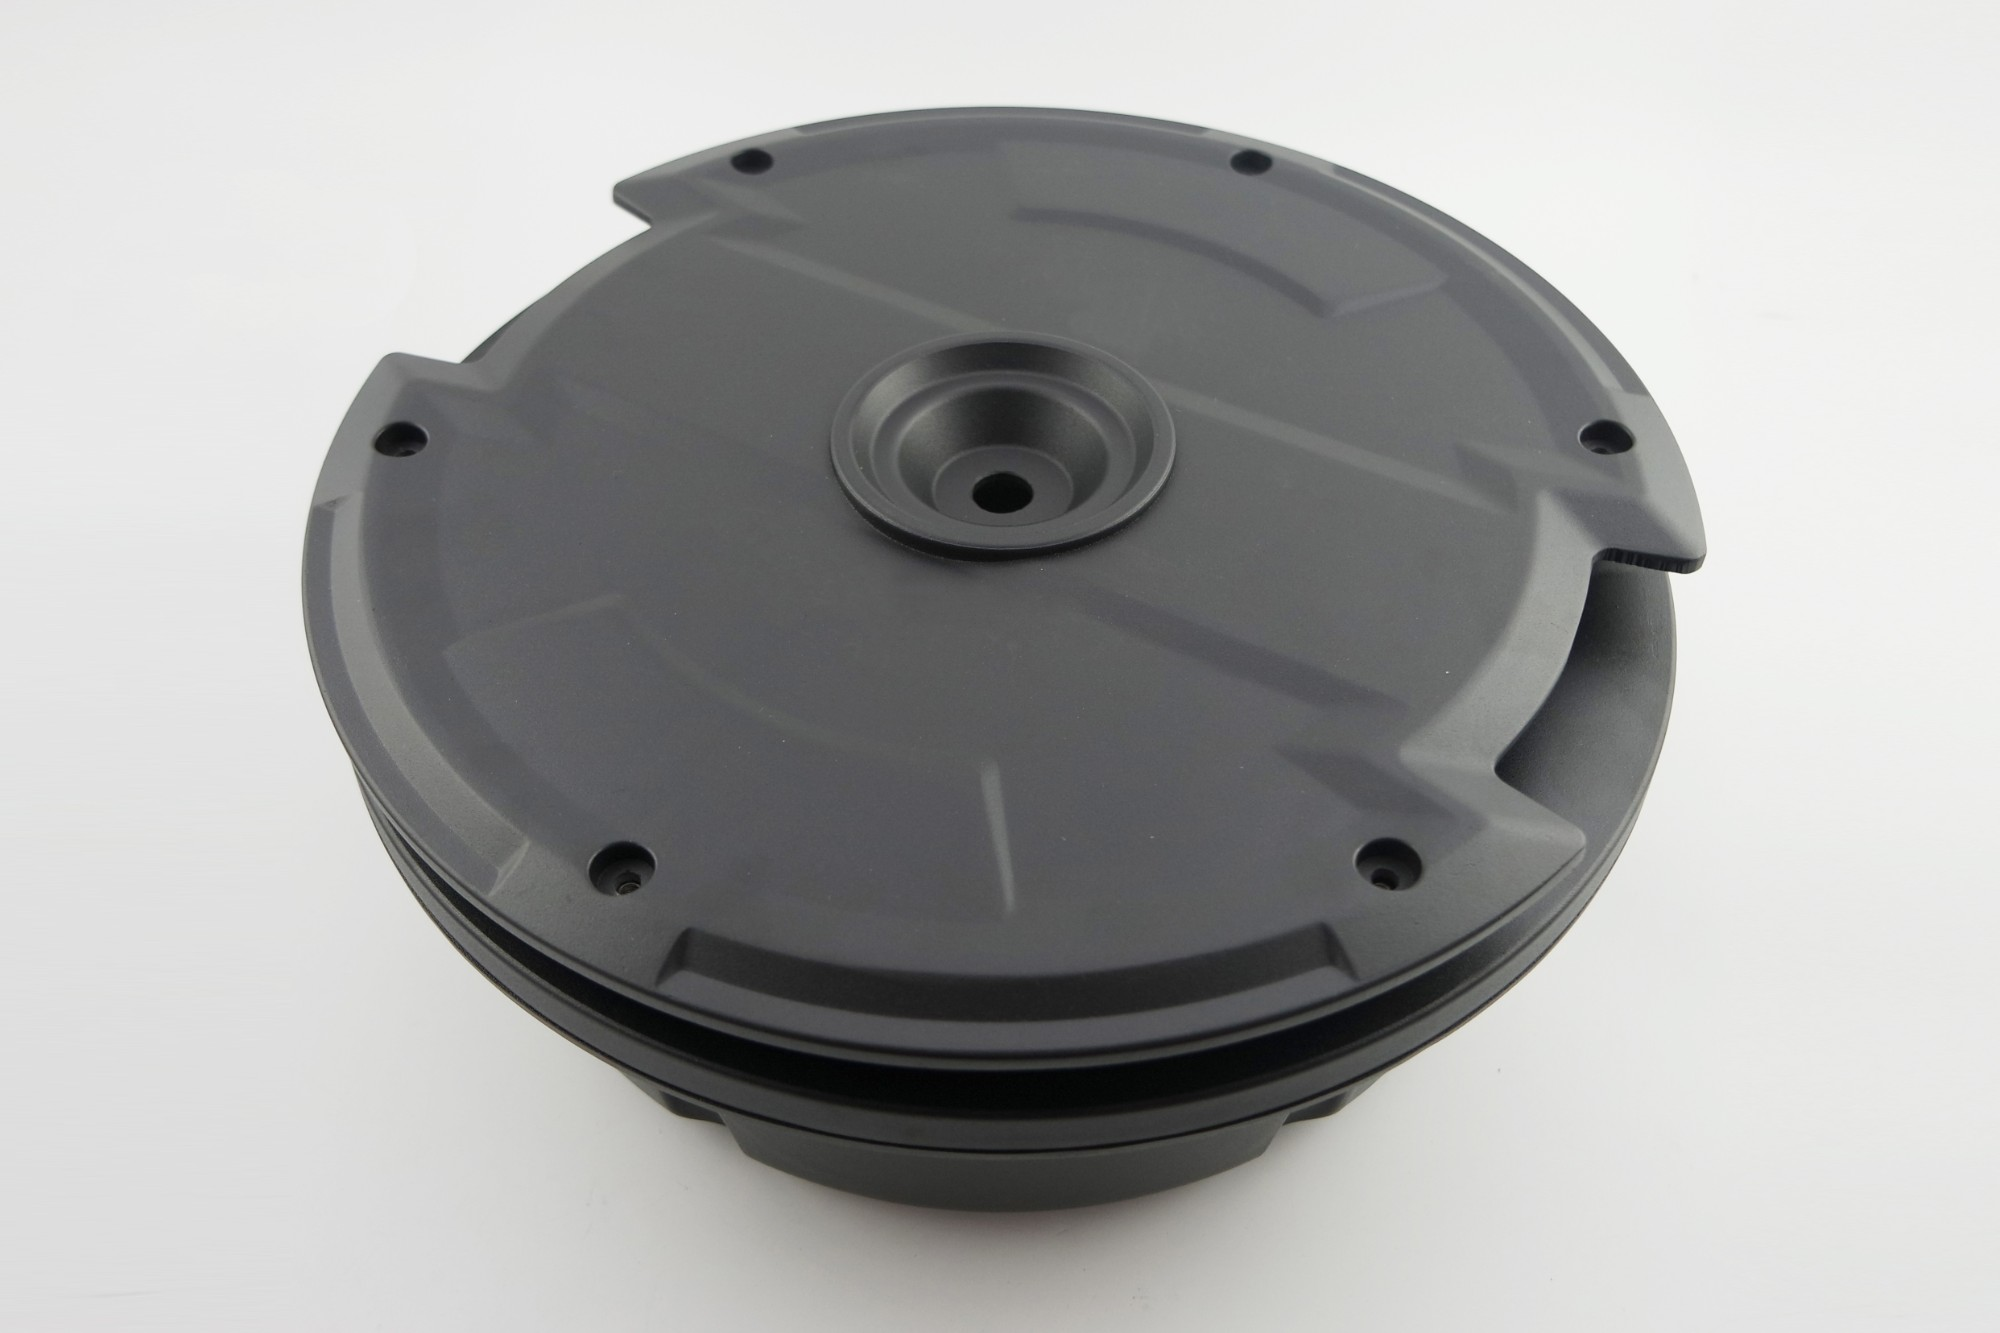 Space-saving Spare Wheel Amplified Subwoofer Manufacturers, Space-saving Spare Wheel Amplified Subwoofer Factory, Supply Space-saving Spare Wheel Amplified Subwoofer